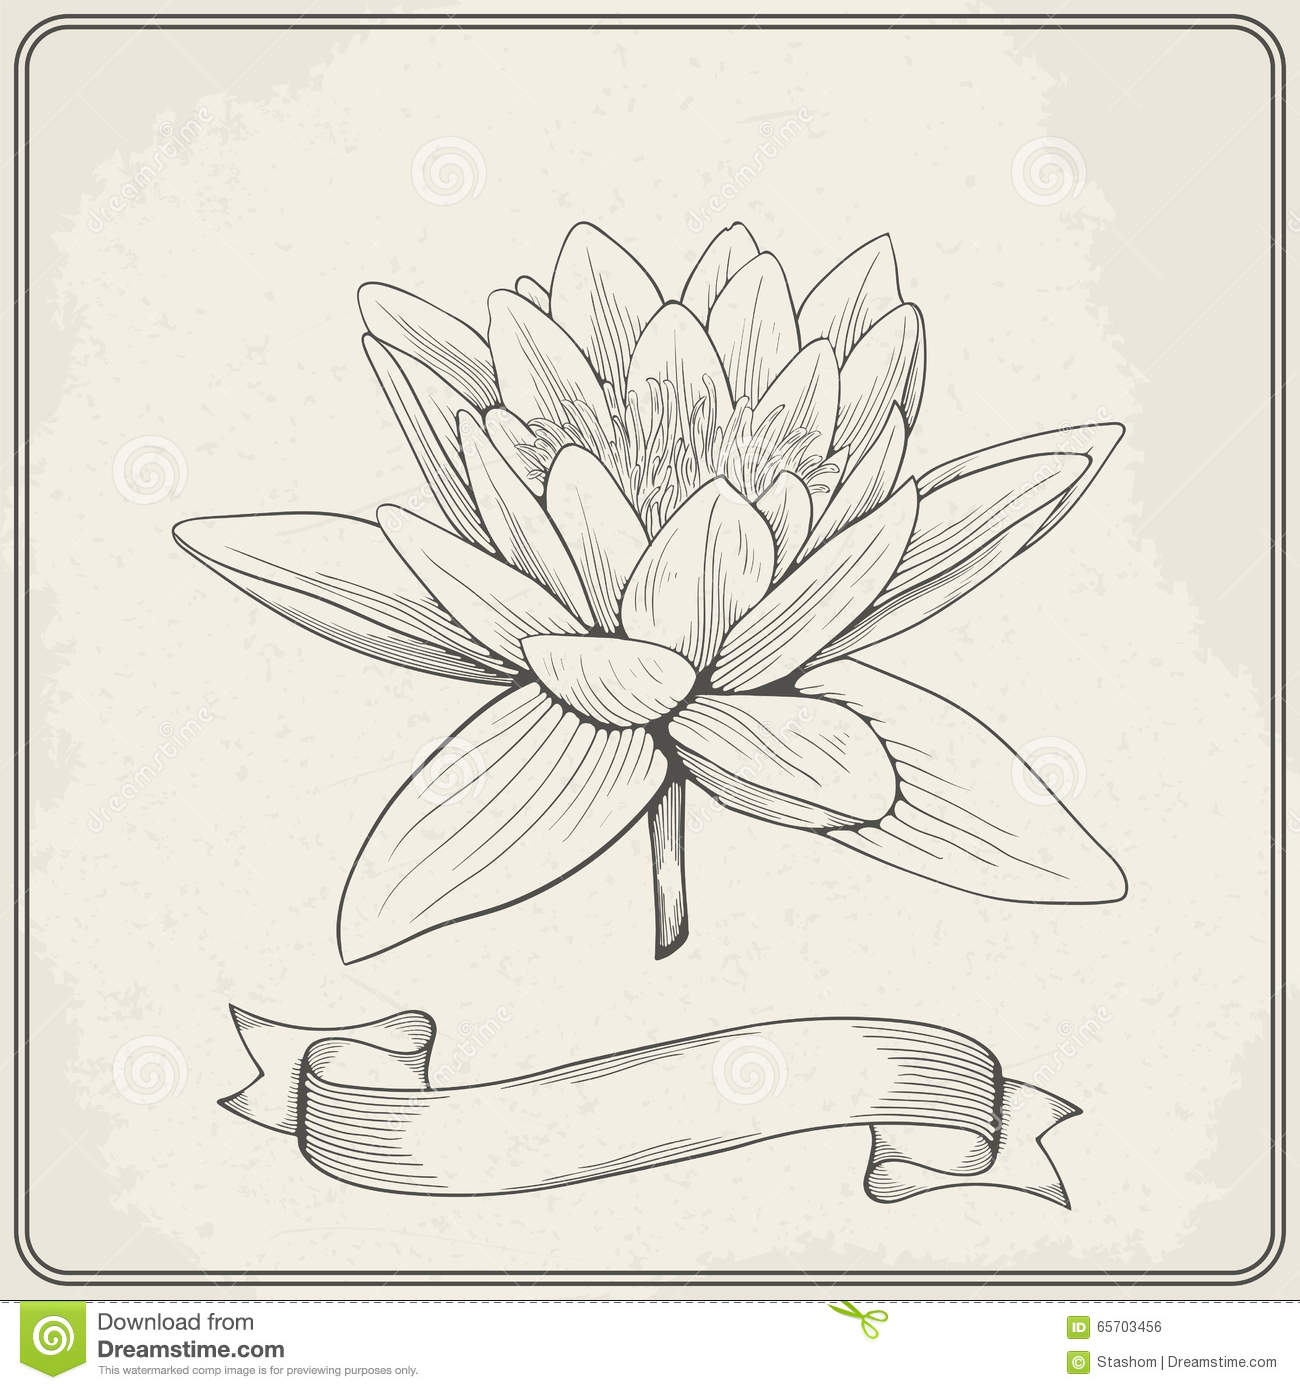 Background With Hand Drawn Sketch Beautiful Water Lily